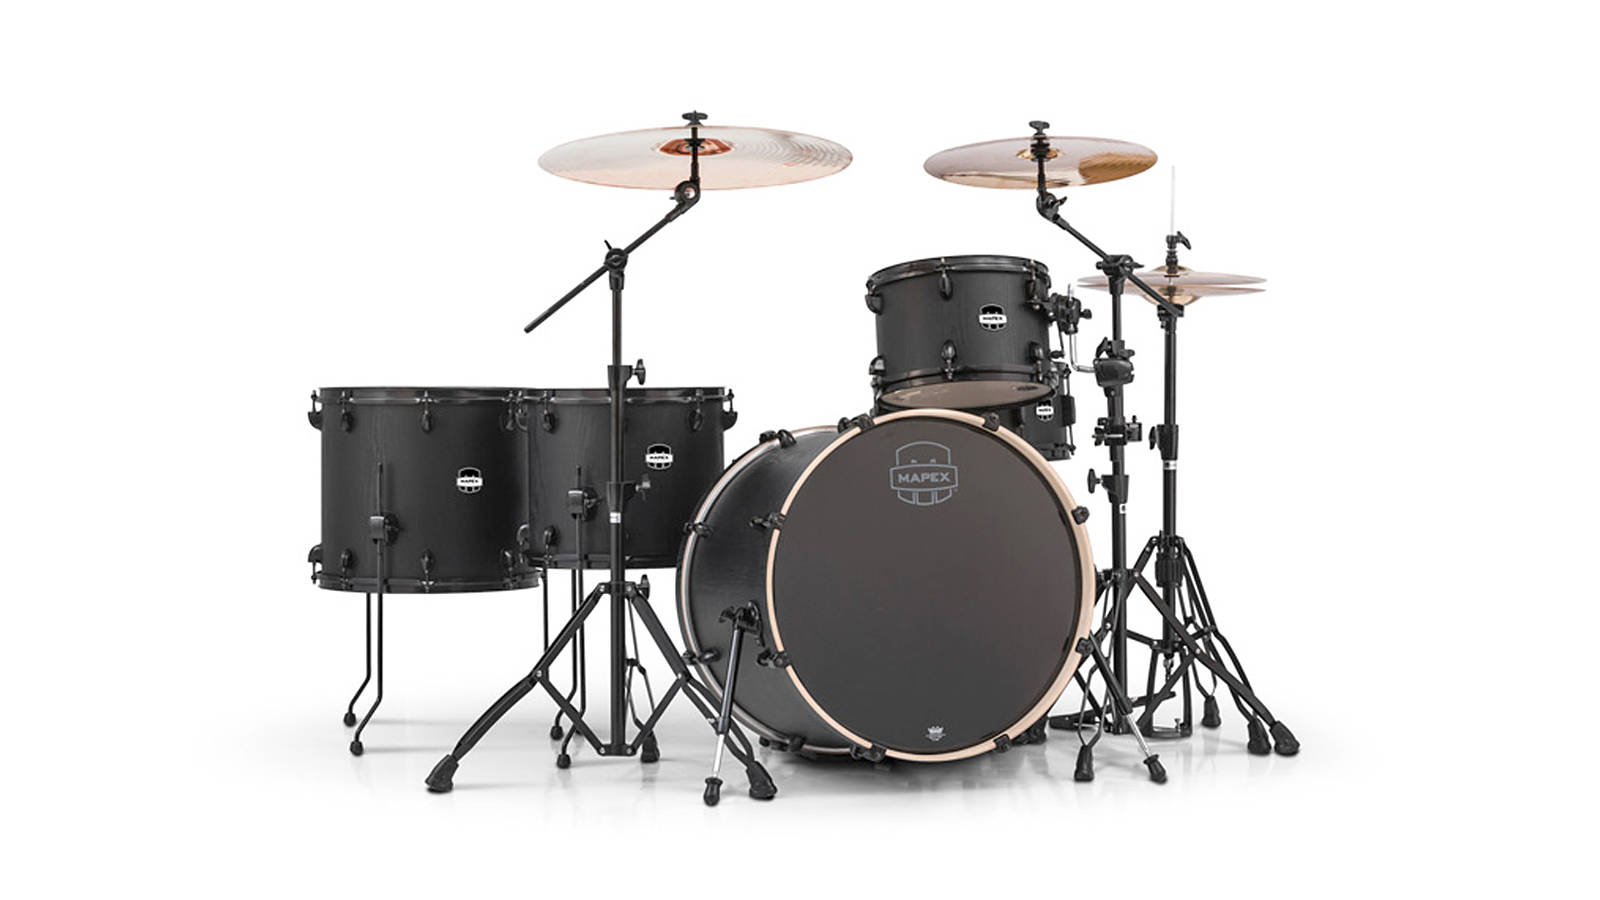 Mapex Mars Drumset Nightwood